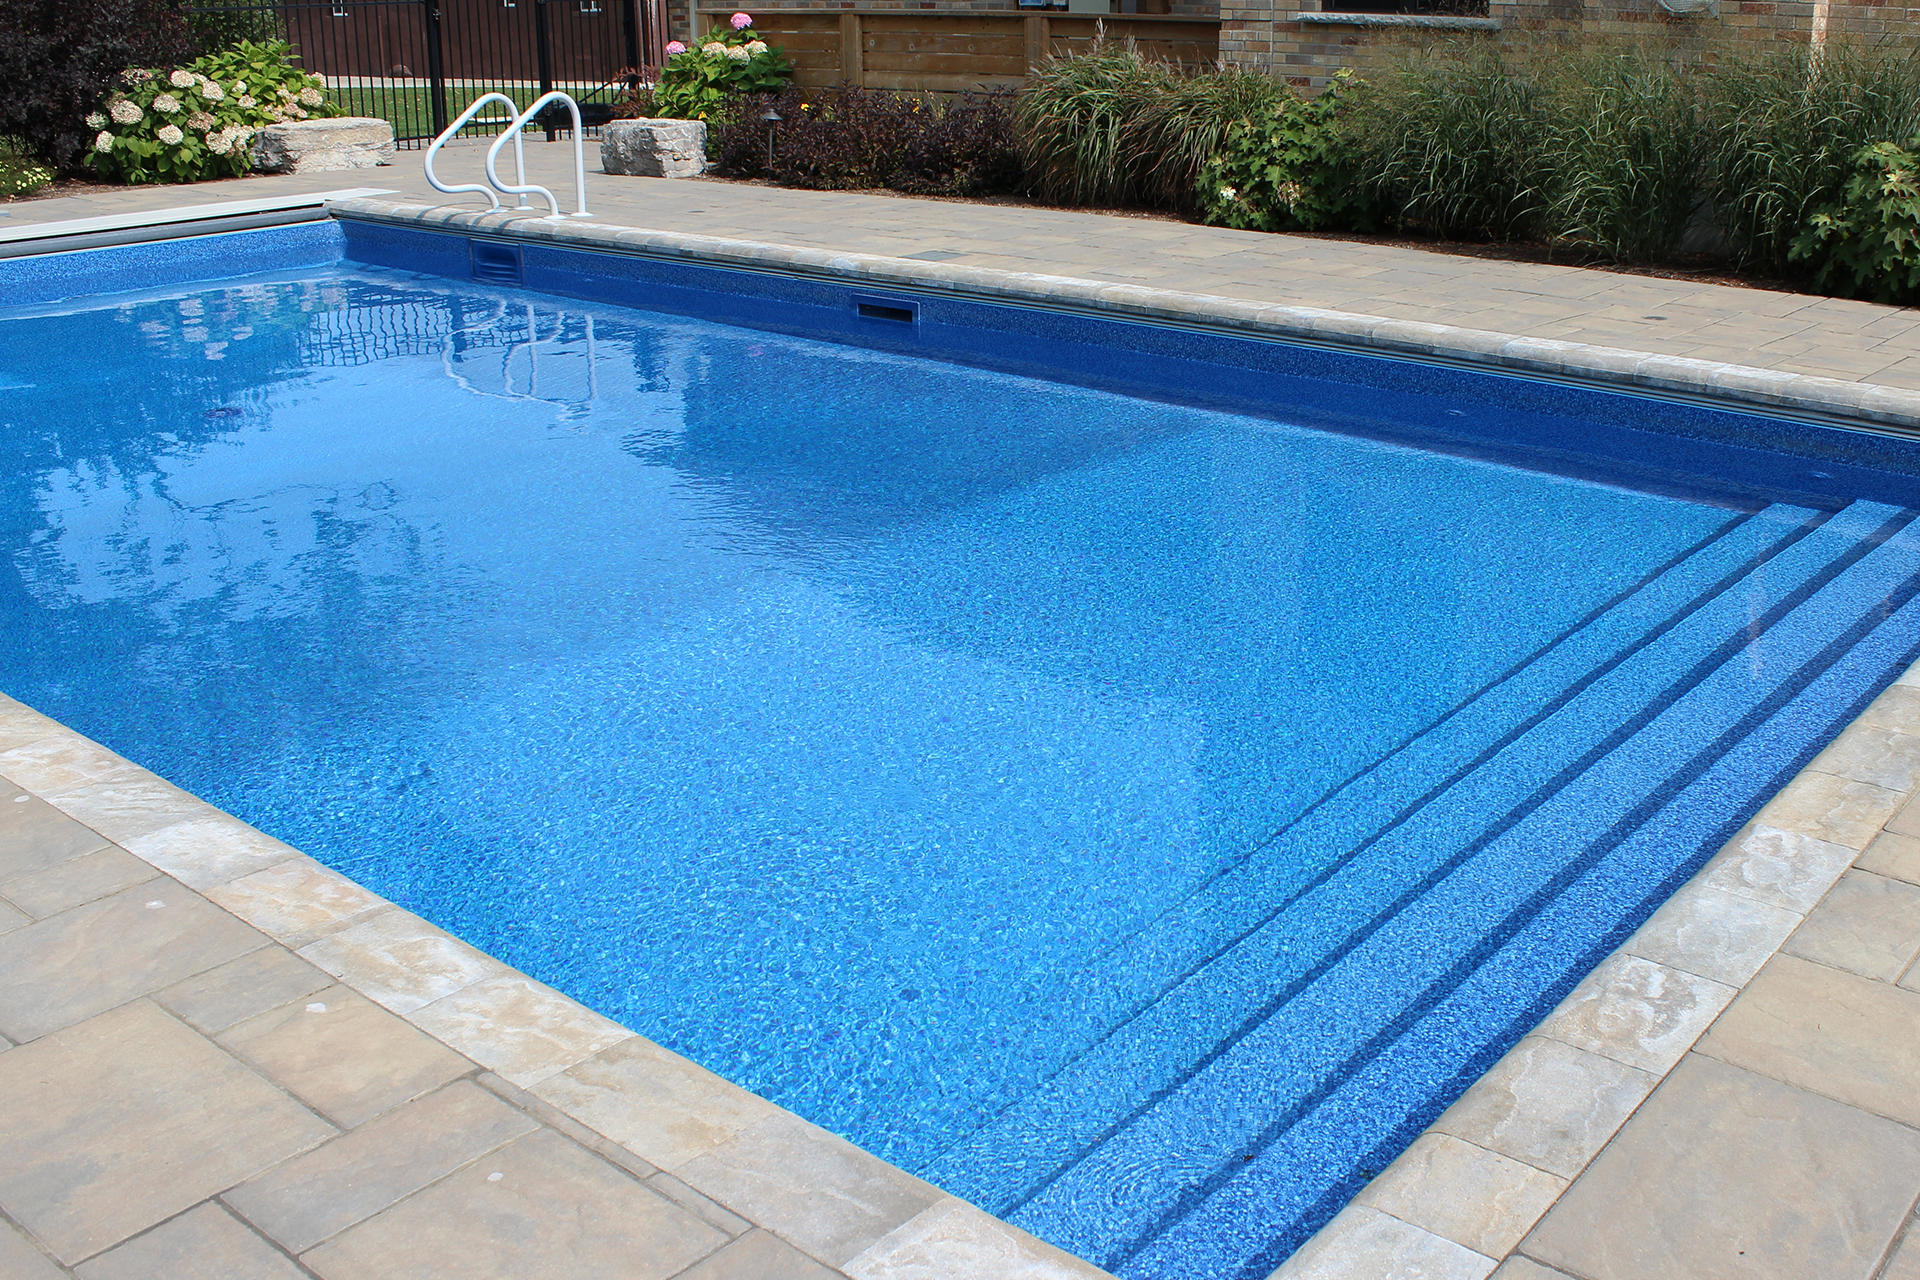 A calm pool with clean and vibrant blue liner by TLC Landscaping